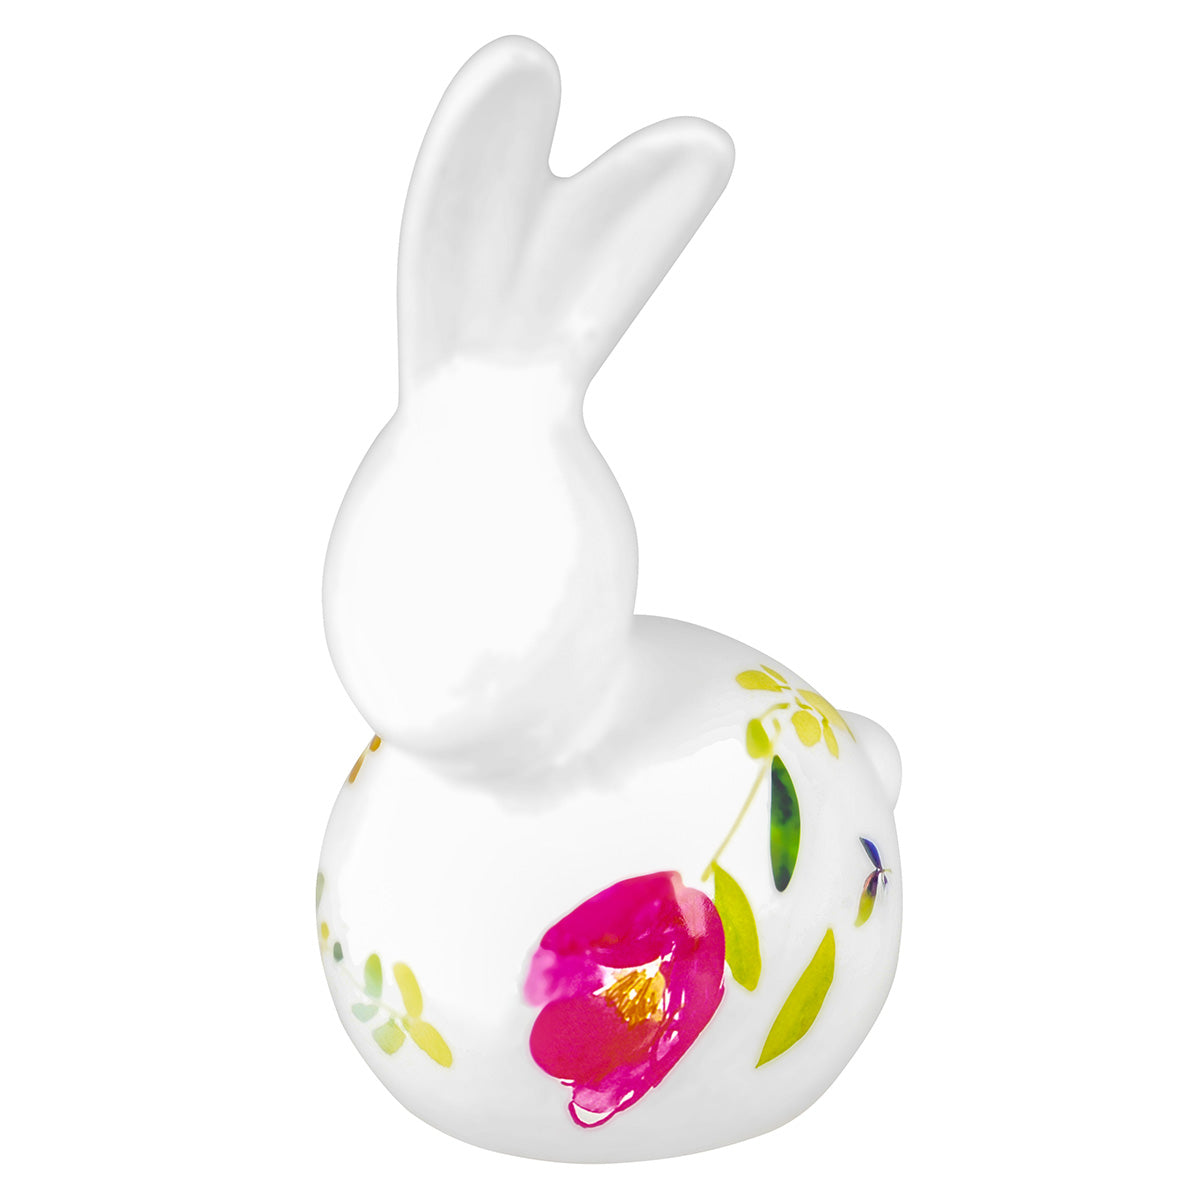 BUNNY UP Decoratiune in forma de iepure